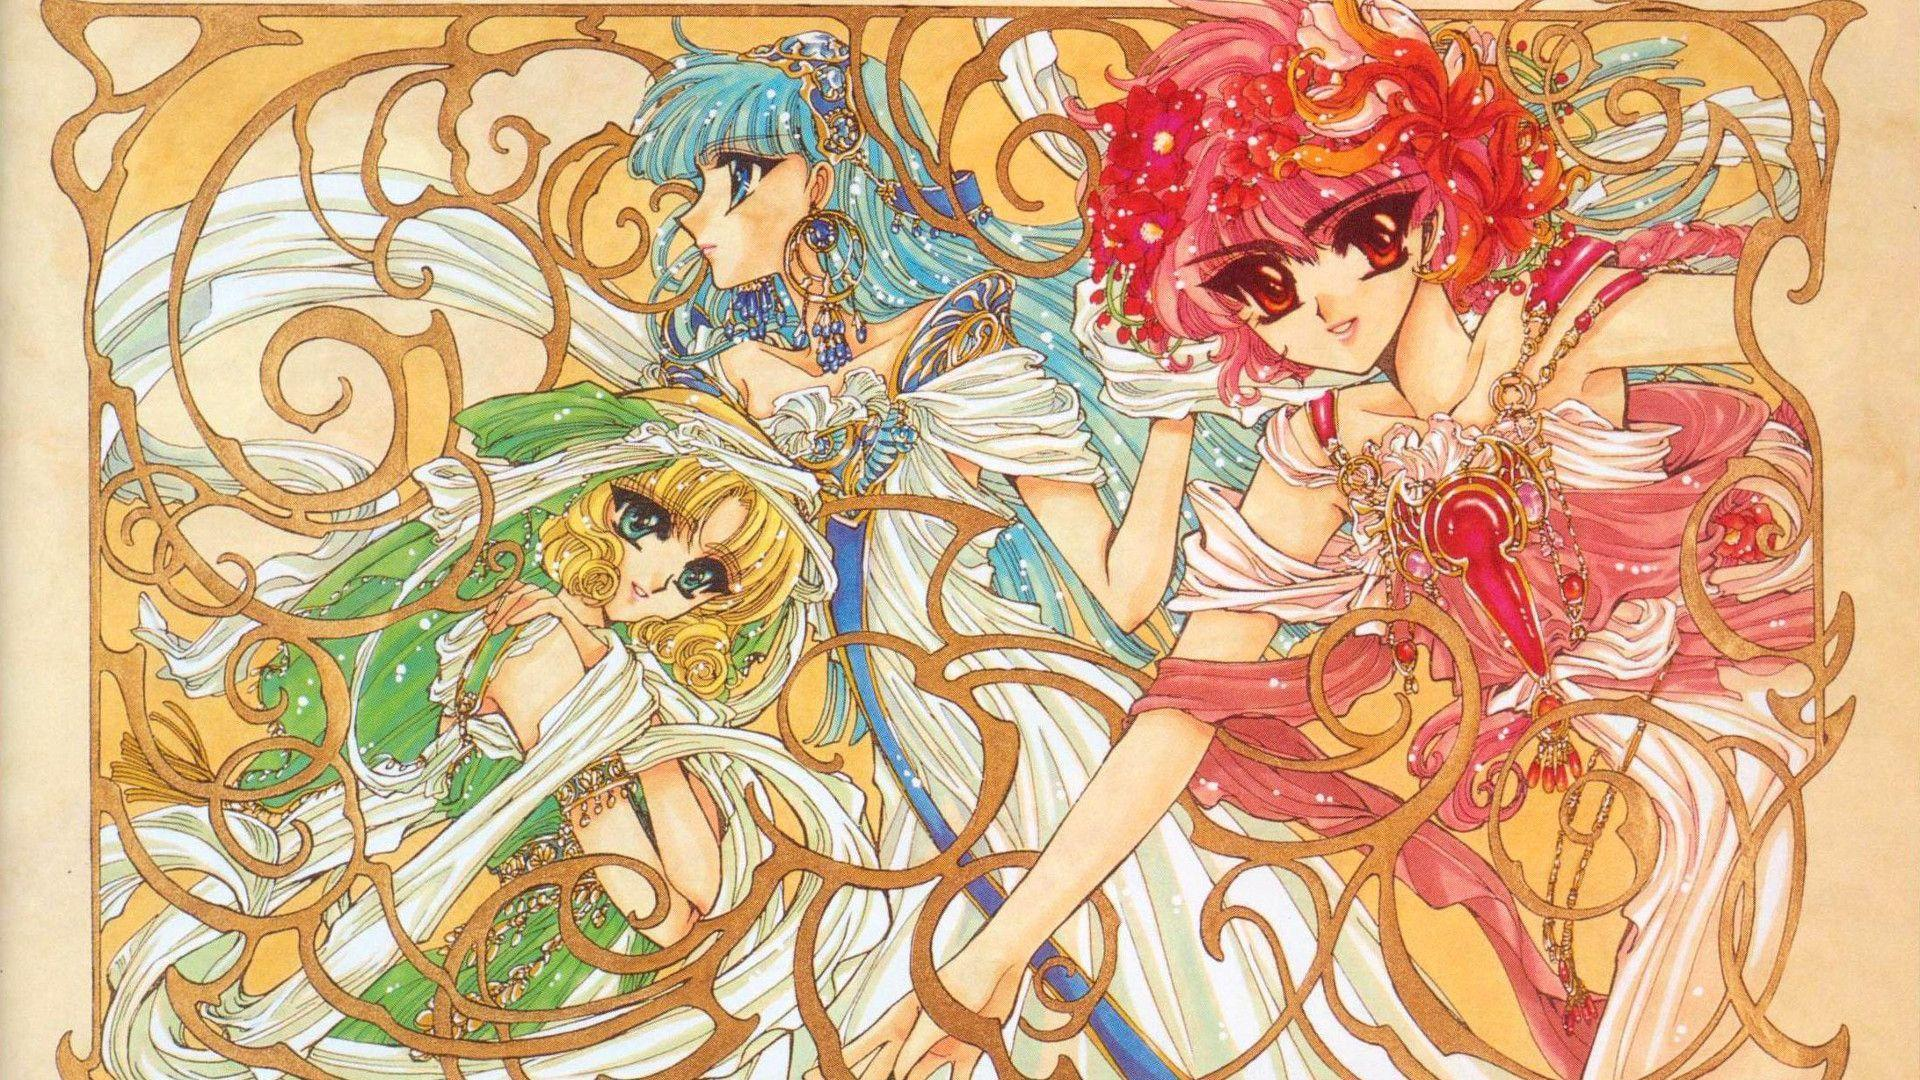 Magic Knight Rayearth Details